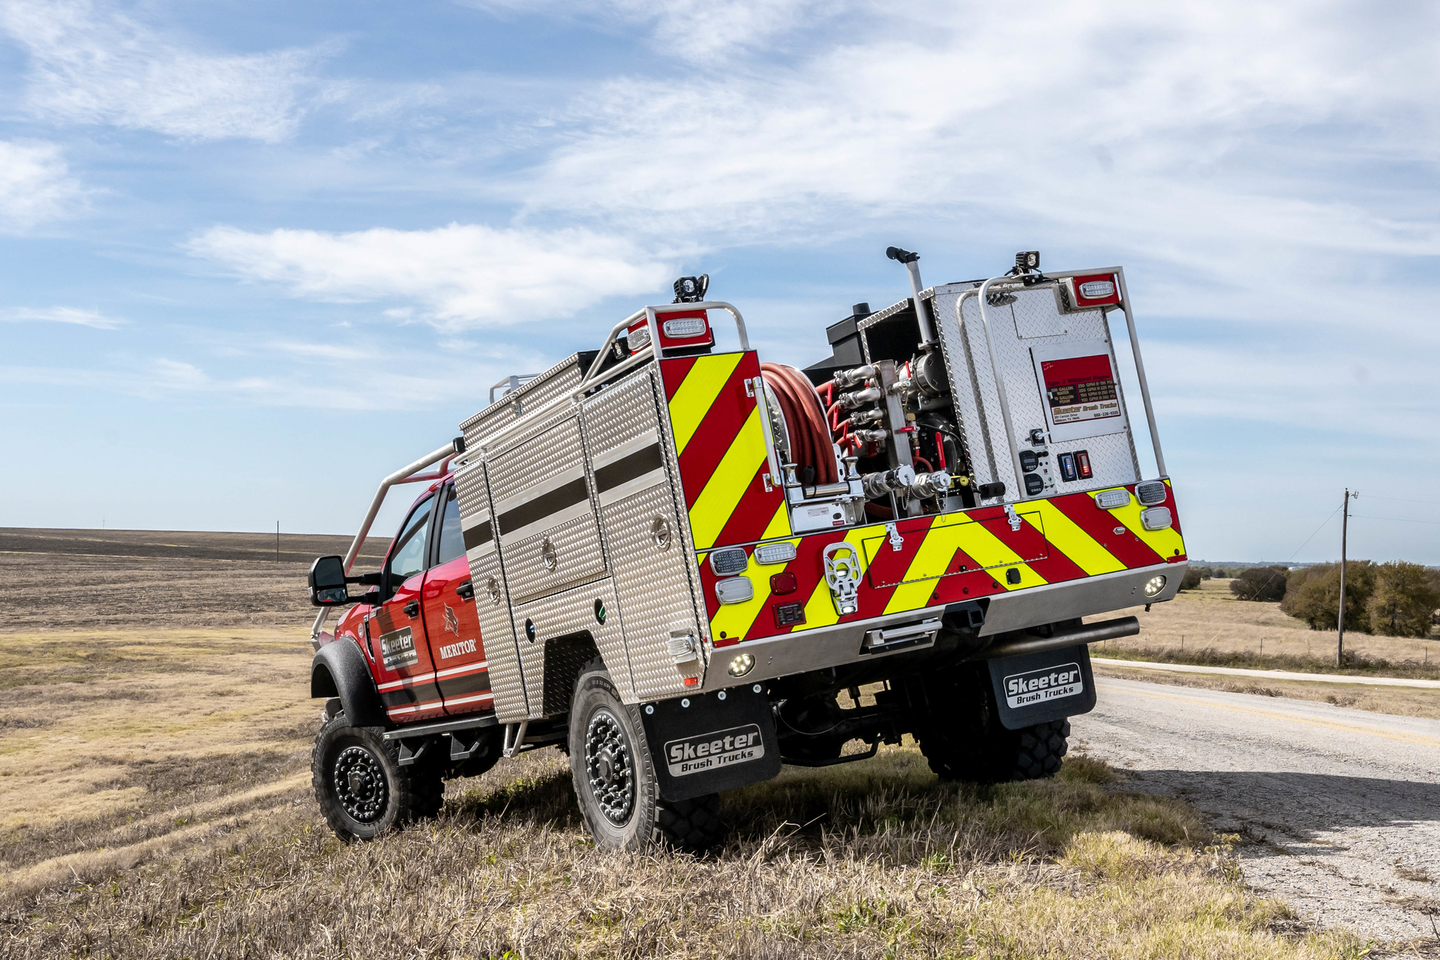 """Skeeter's goal is to build a vehicle to meet firefighting Type 3 standards (usually a Class 6-7 truck) based on a Class 5 pickup that could """"go places that those big trucks could only dream of going."""""""